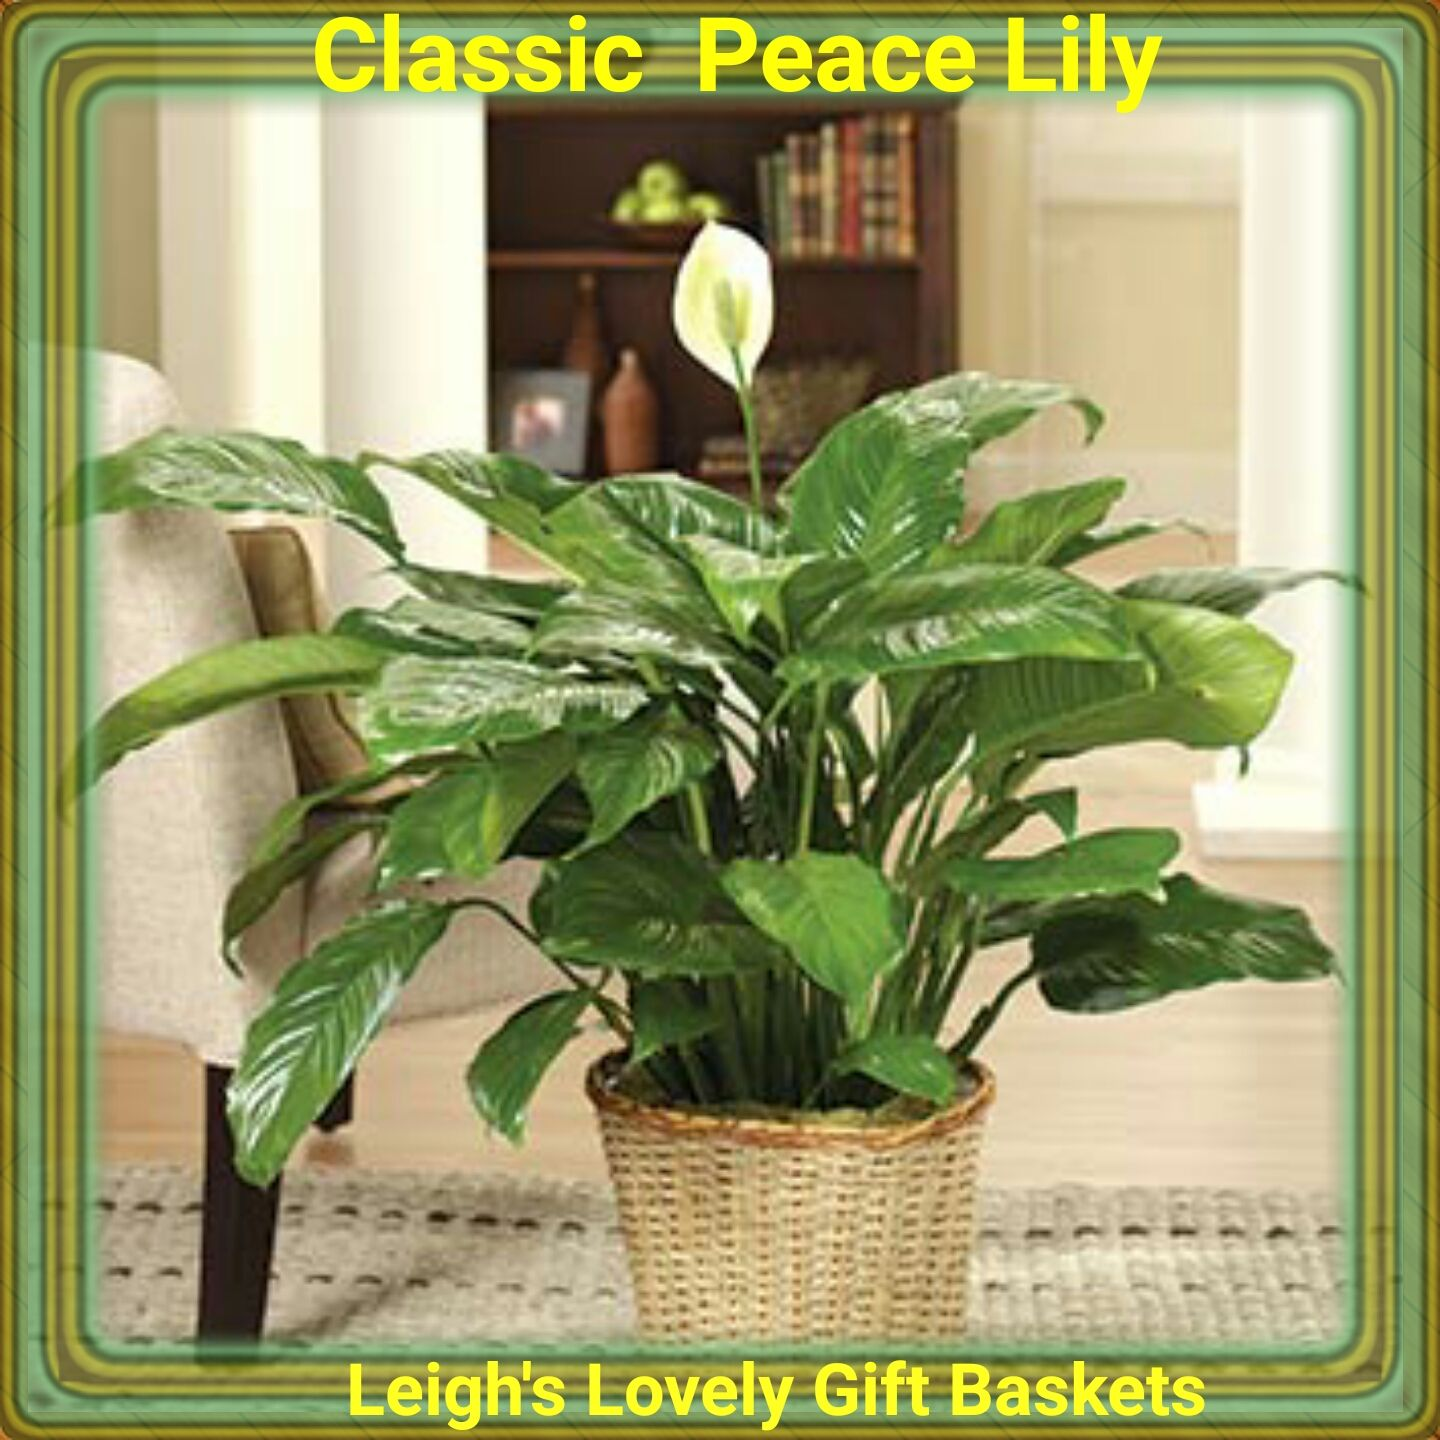 Classic Peace Lily 5999 Make A Beautiful Statement By Sending This